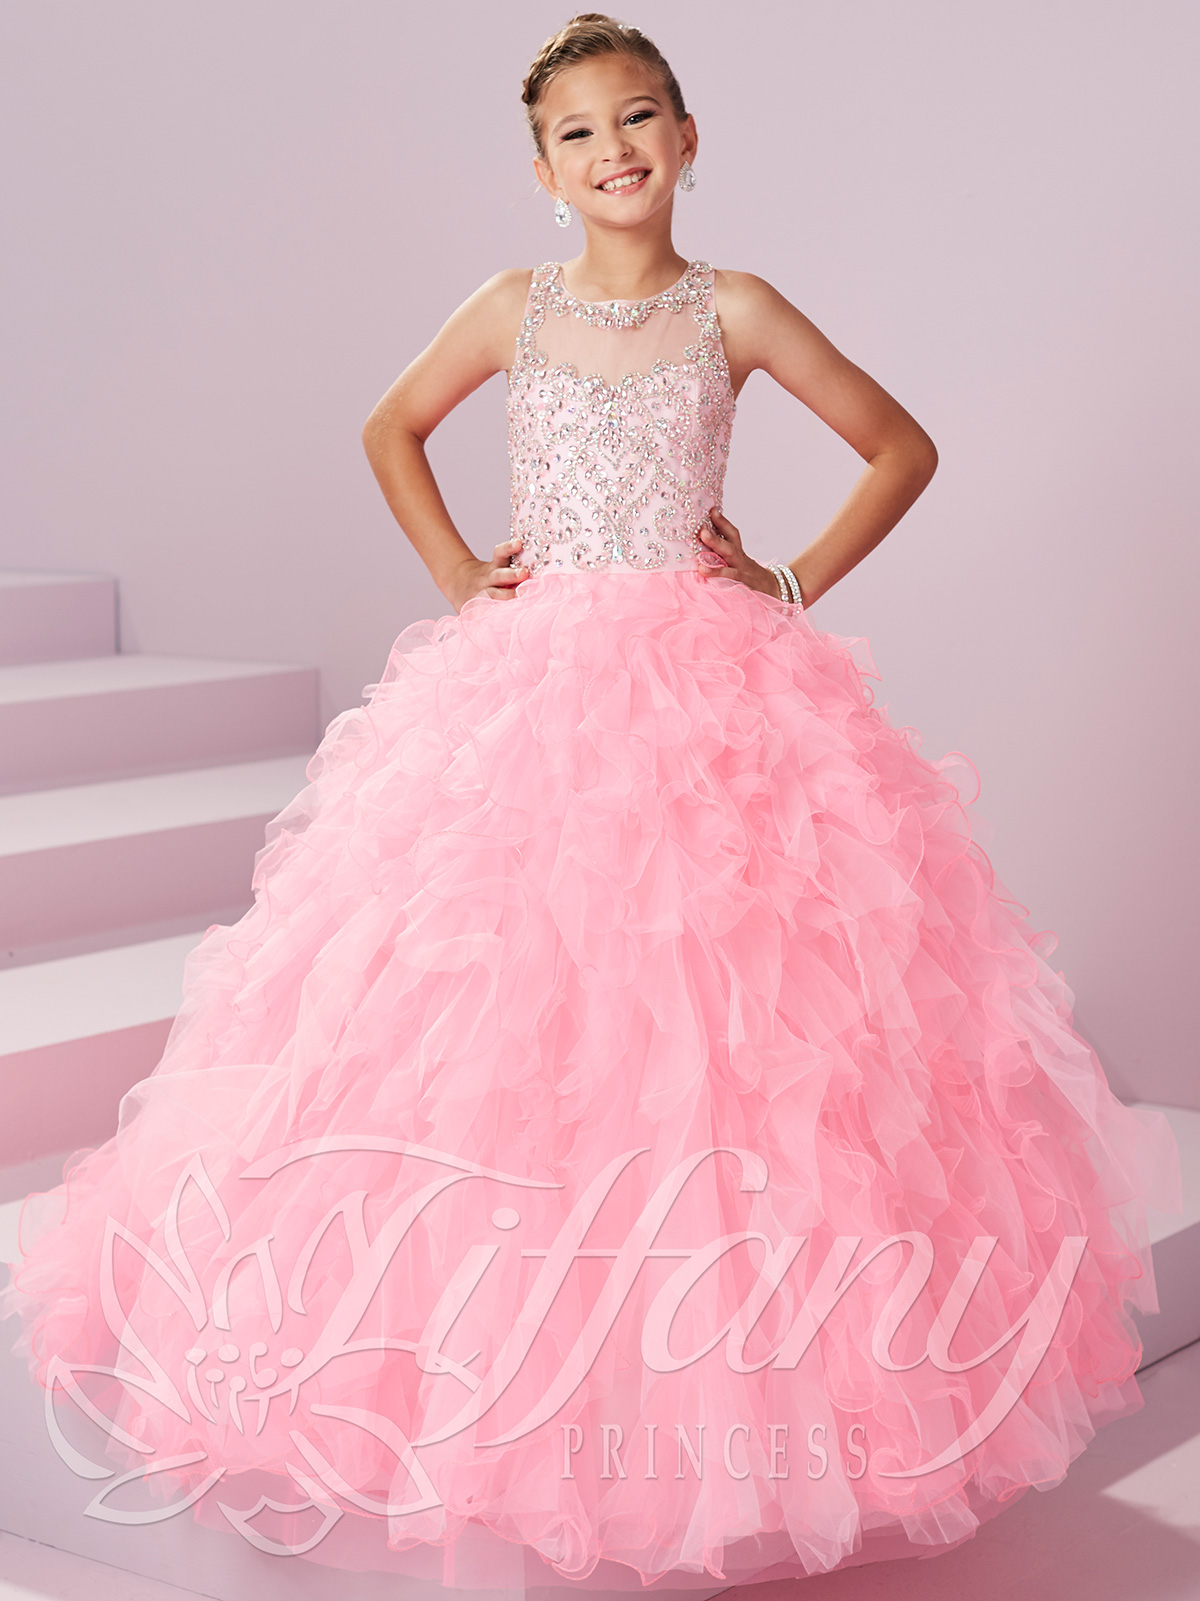 a27657eb618 Ruffled Skirt Pageant Dress by Tiffany Princess 13497